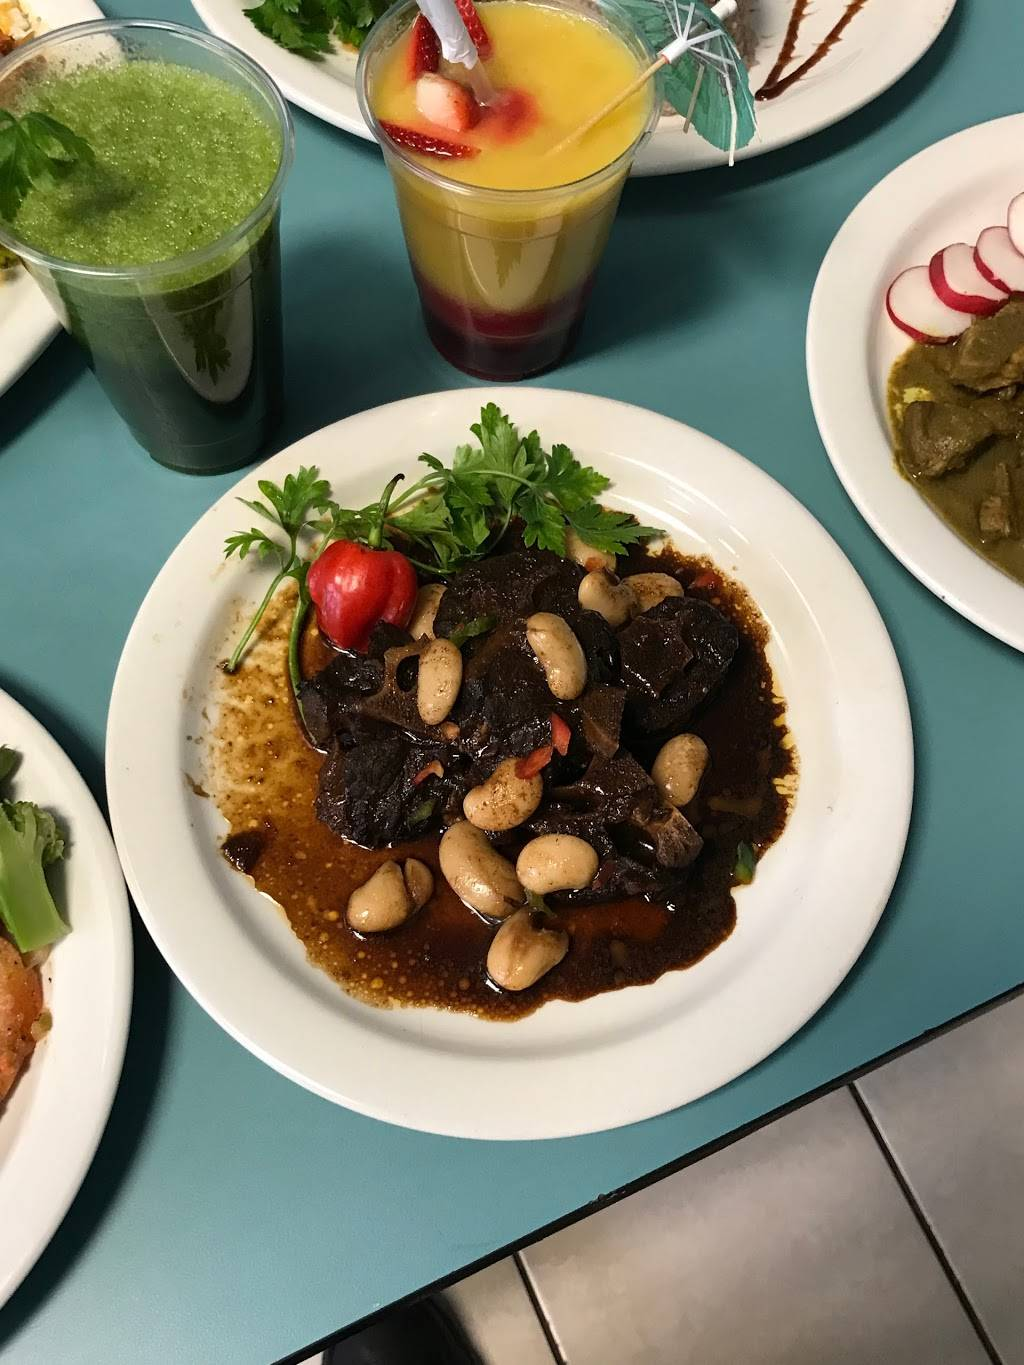 Downs River Restaurant | restaurant | 517 Stanley Ave, Brooklyn, NY 11207, USA | 7182724646 OR +1 718-272-4646